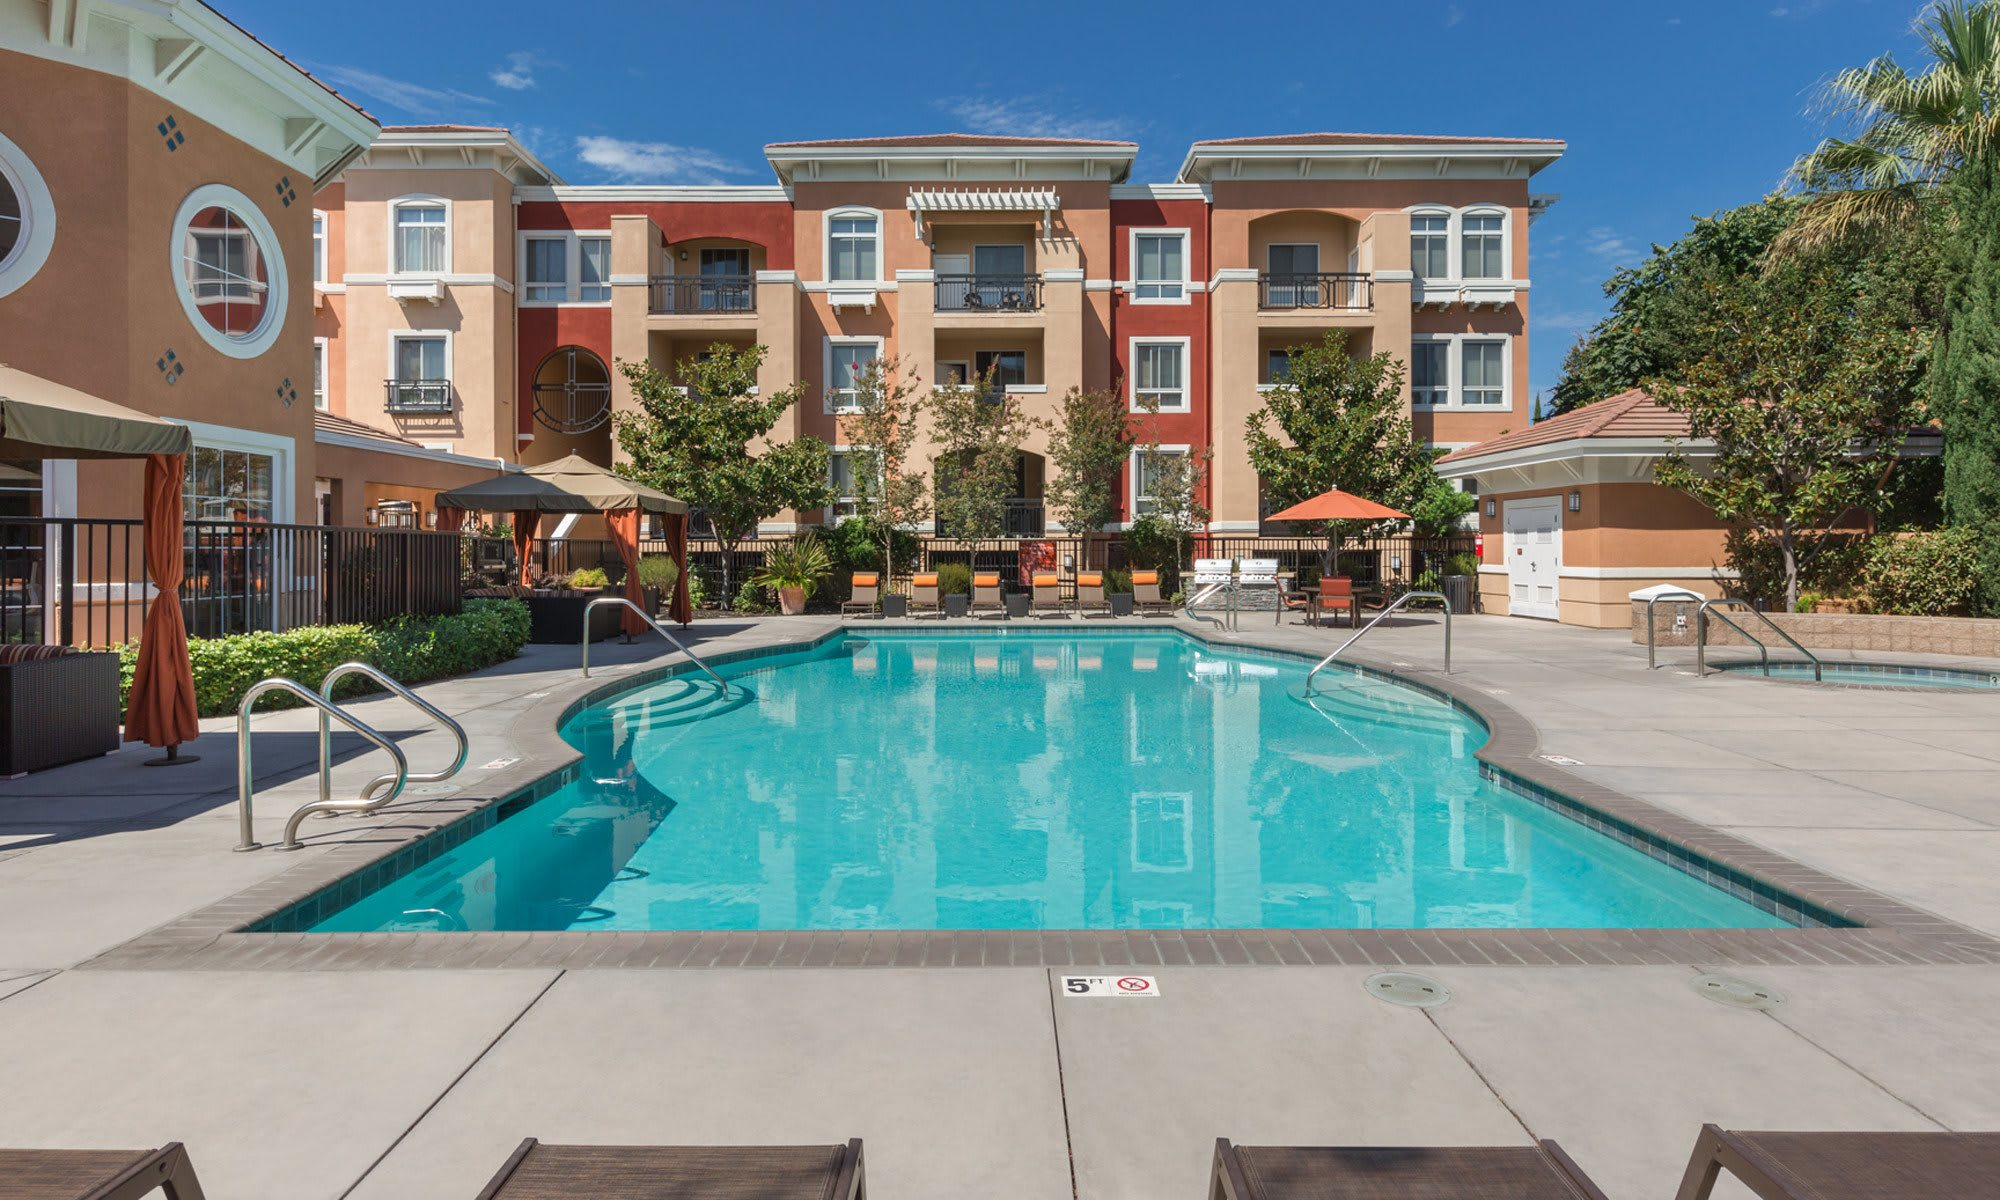 Downtown Sunnyvale Ca Apartments For Rent Villa Del Sol